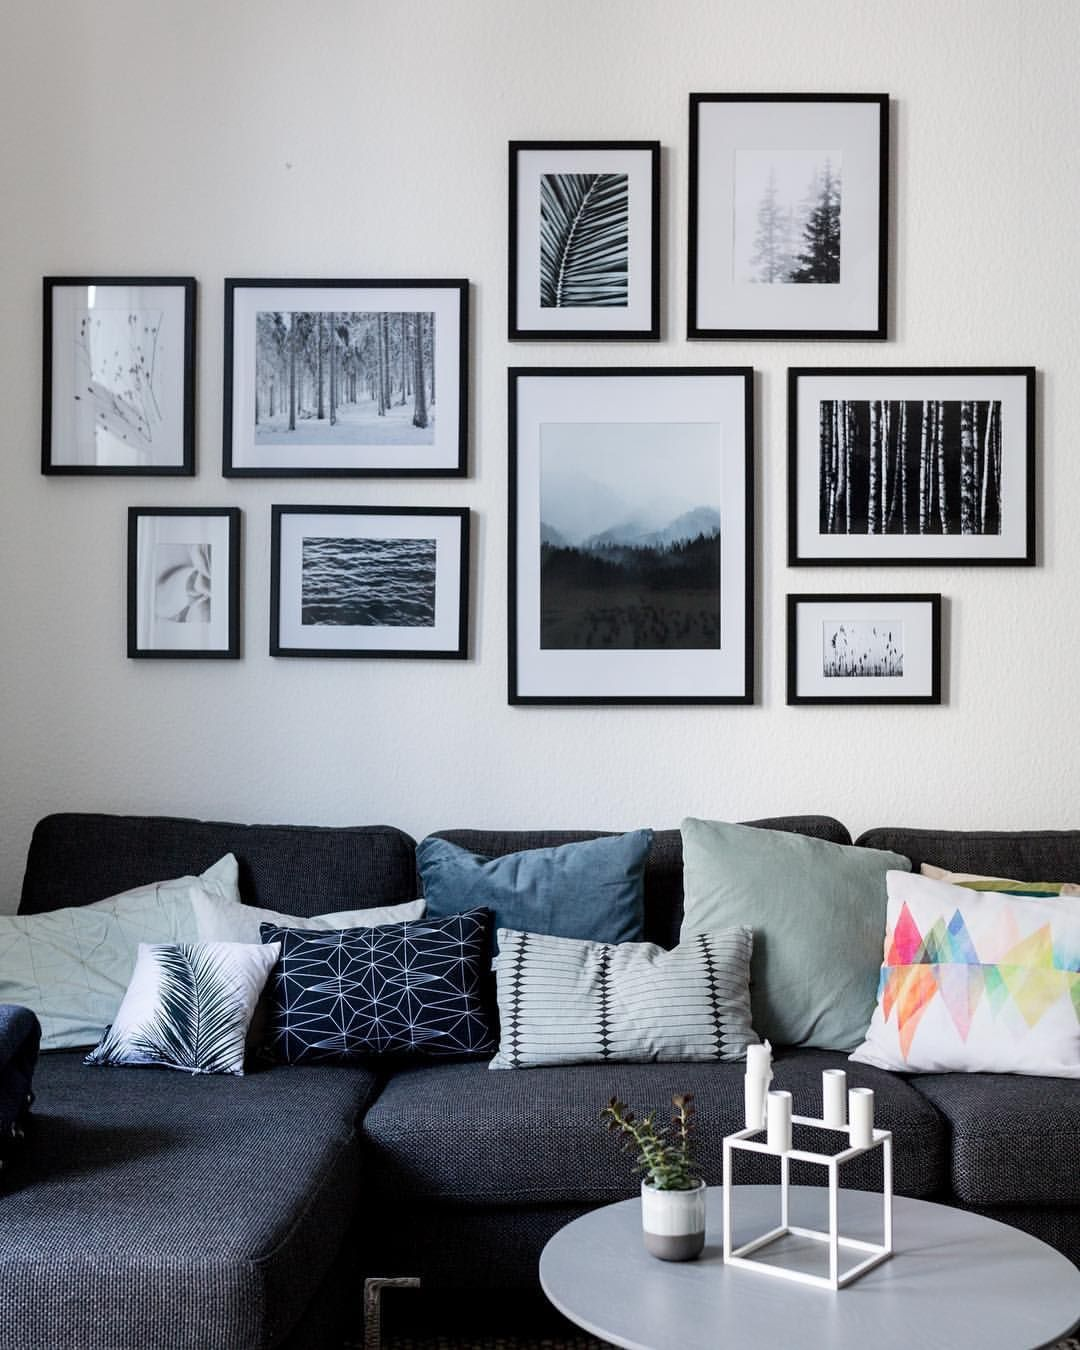 Decorate the walls of your home with something new as well as